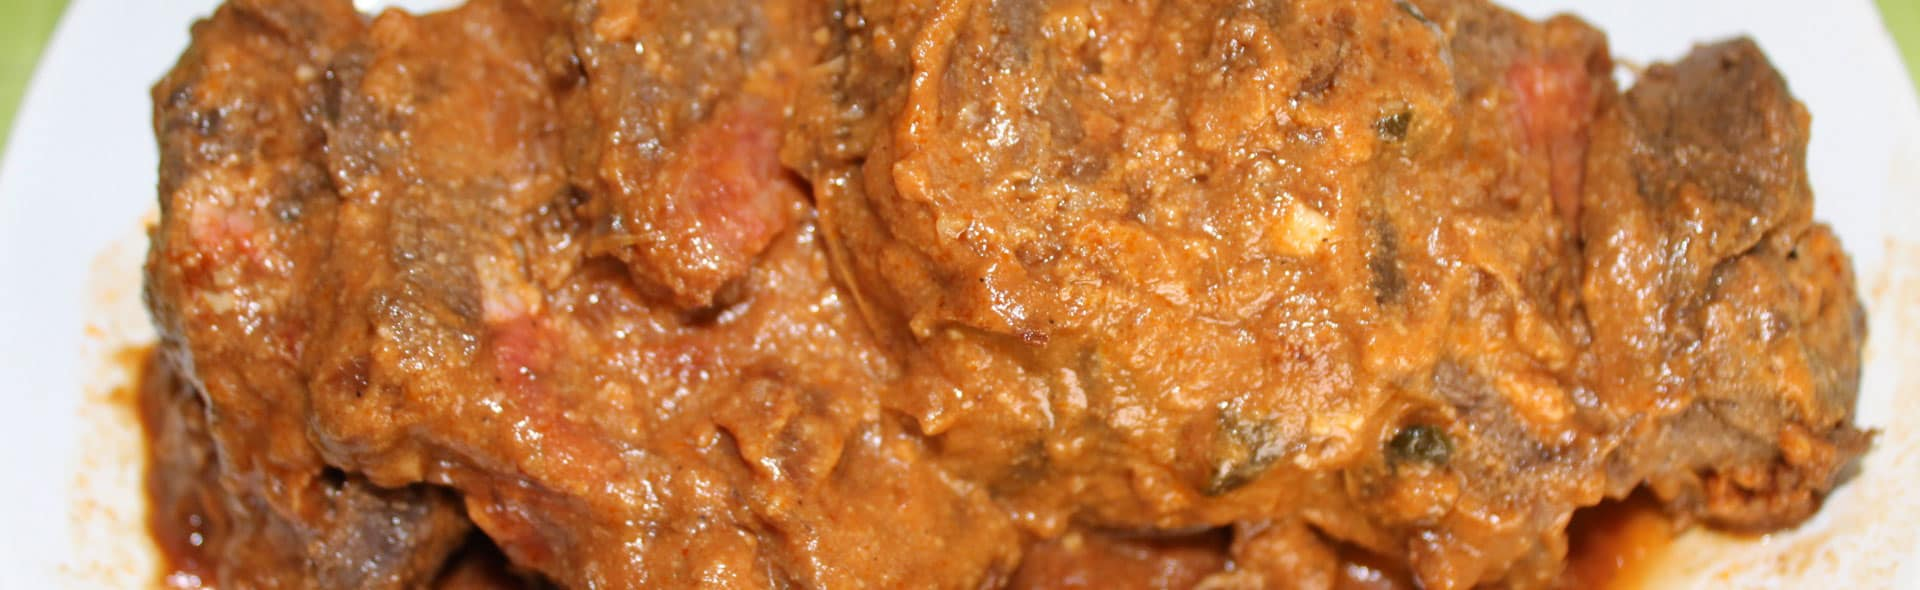 how to make morcon sauce